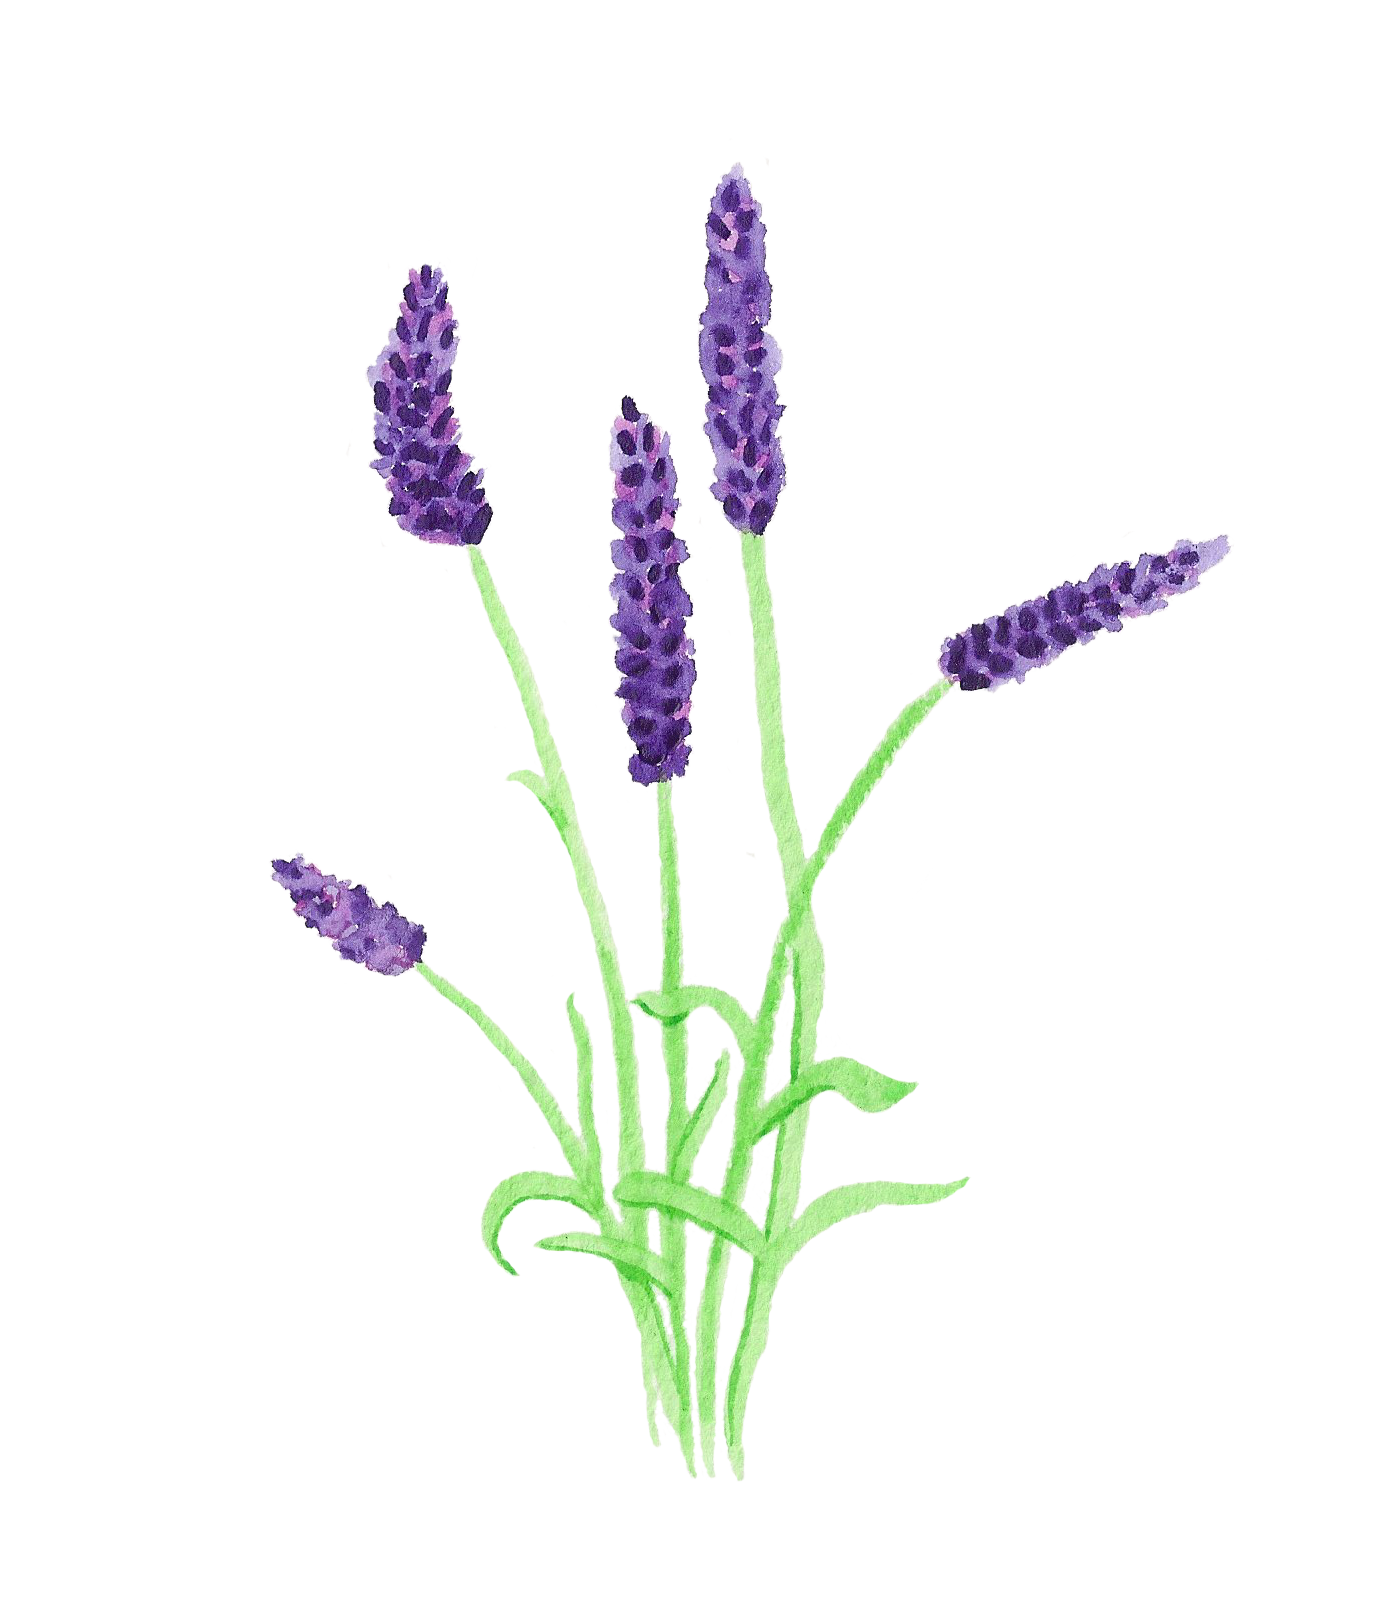 print pinterest flower art rh pinterest com Lavender Illustration Lavender Illustration